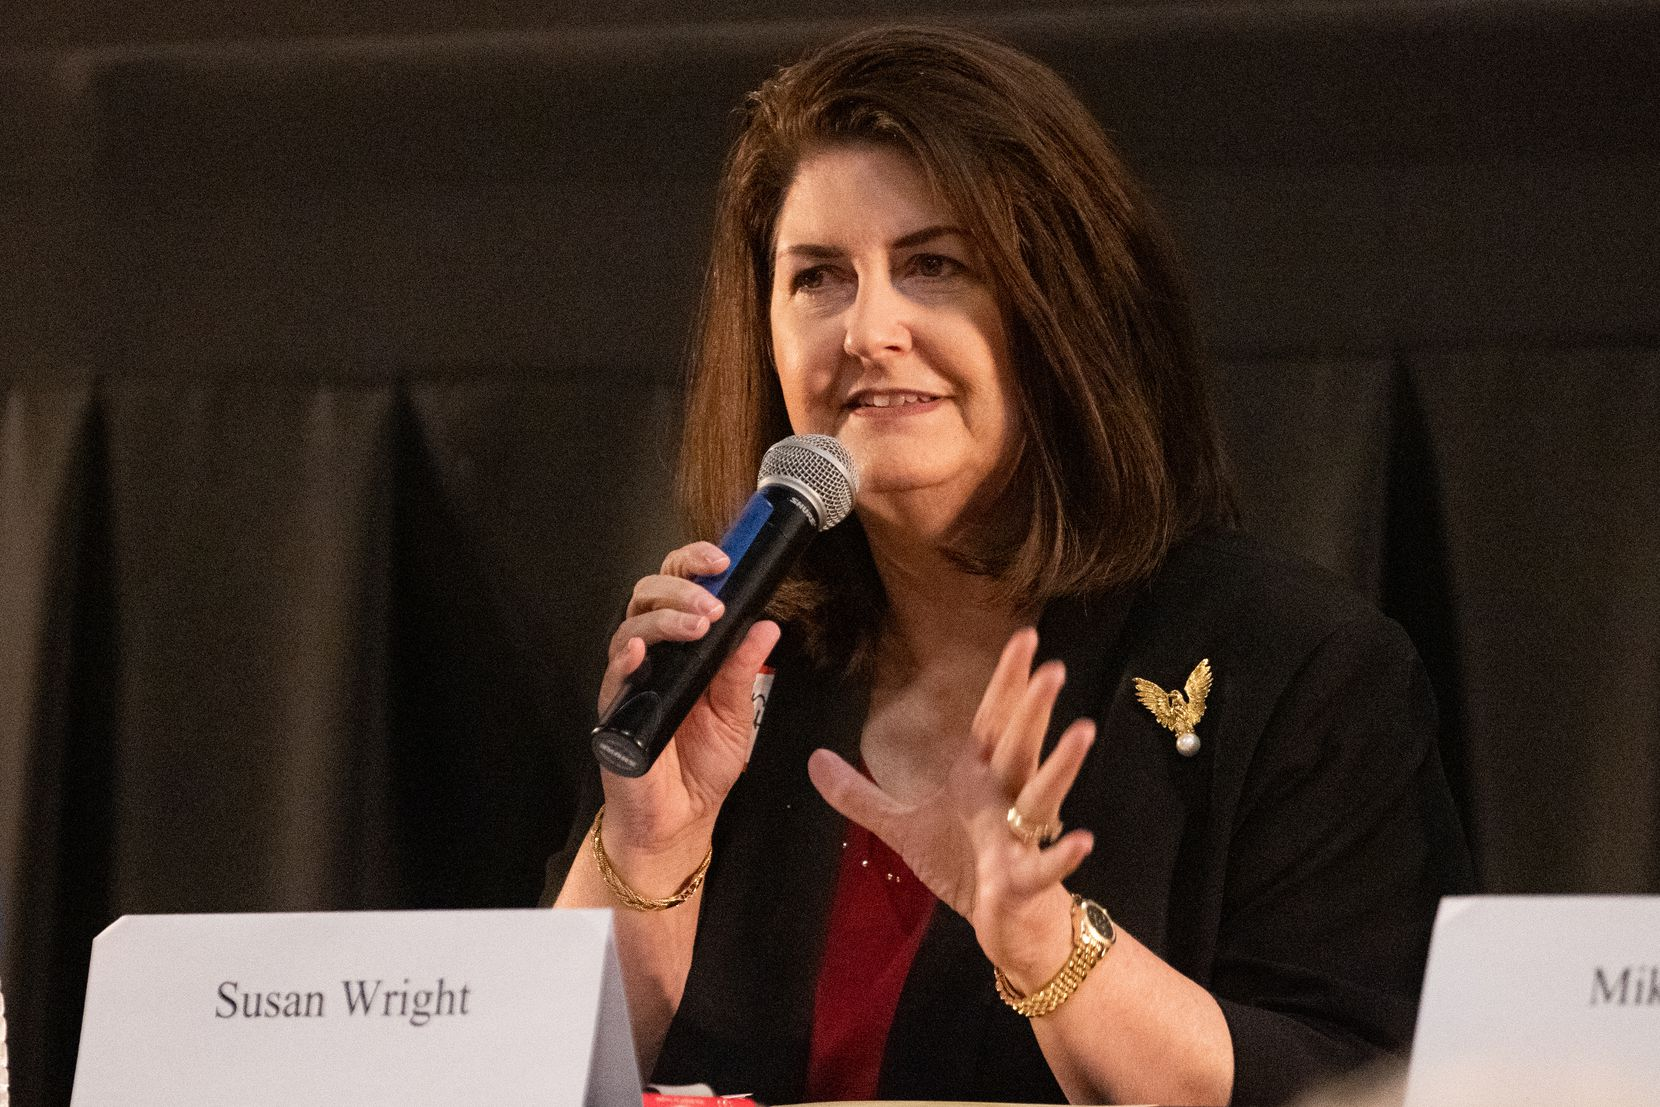 Susan Wright, a Republican candidate running in the 6th Congressional District of Texas race, answered questions during a forum hosted by the Arlington Republican Club at Studio Movie Grill in Arlington last month. (Juan Figueroa/The Dallas Morning News)